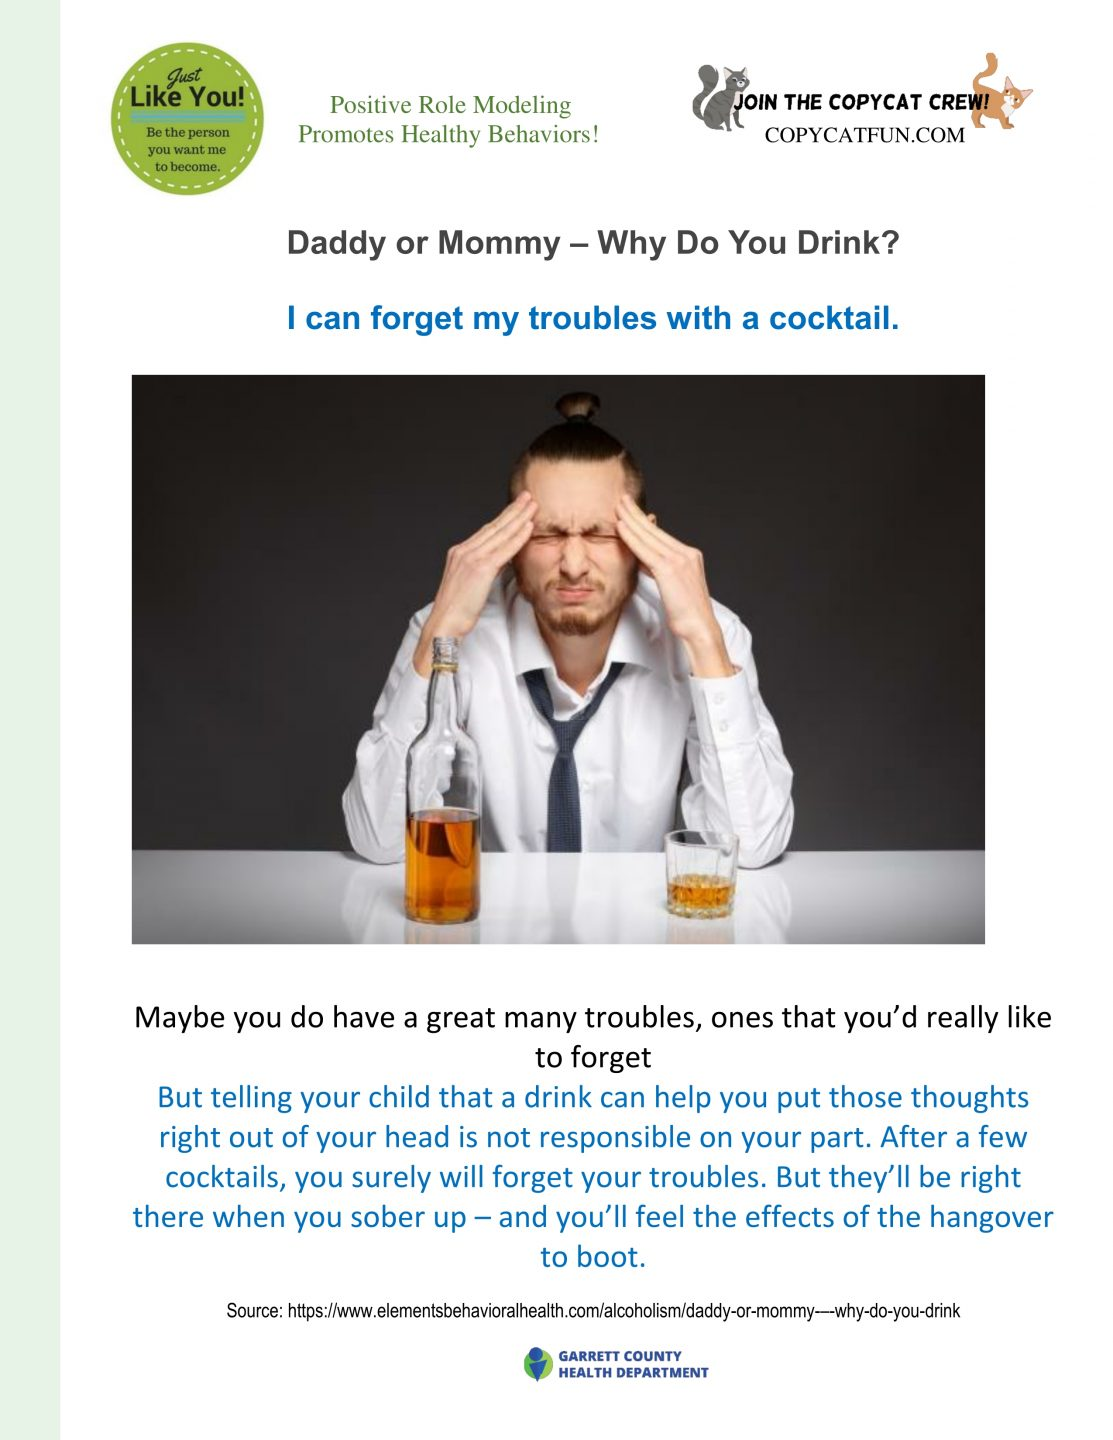 Why do you want to drink